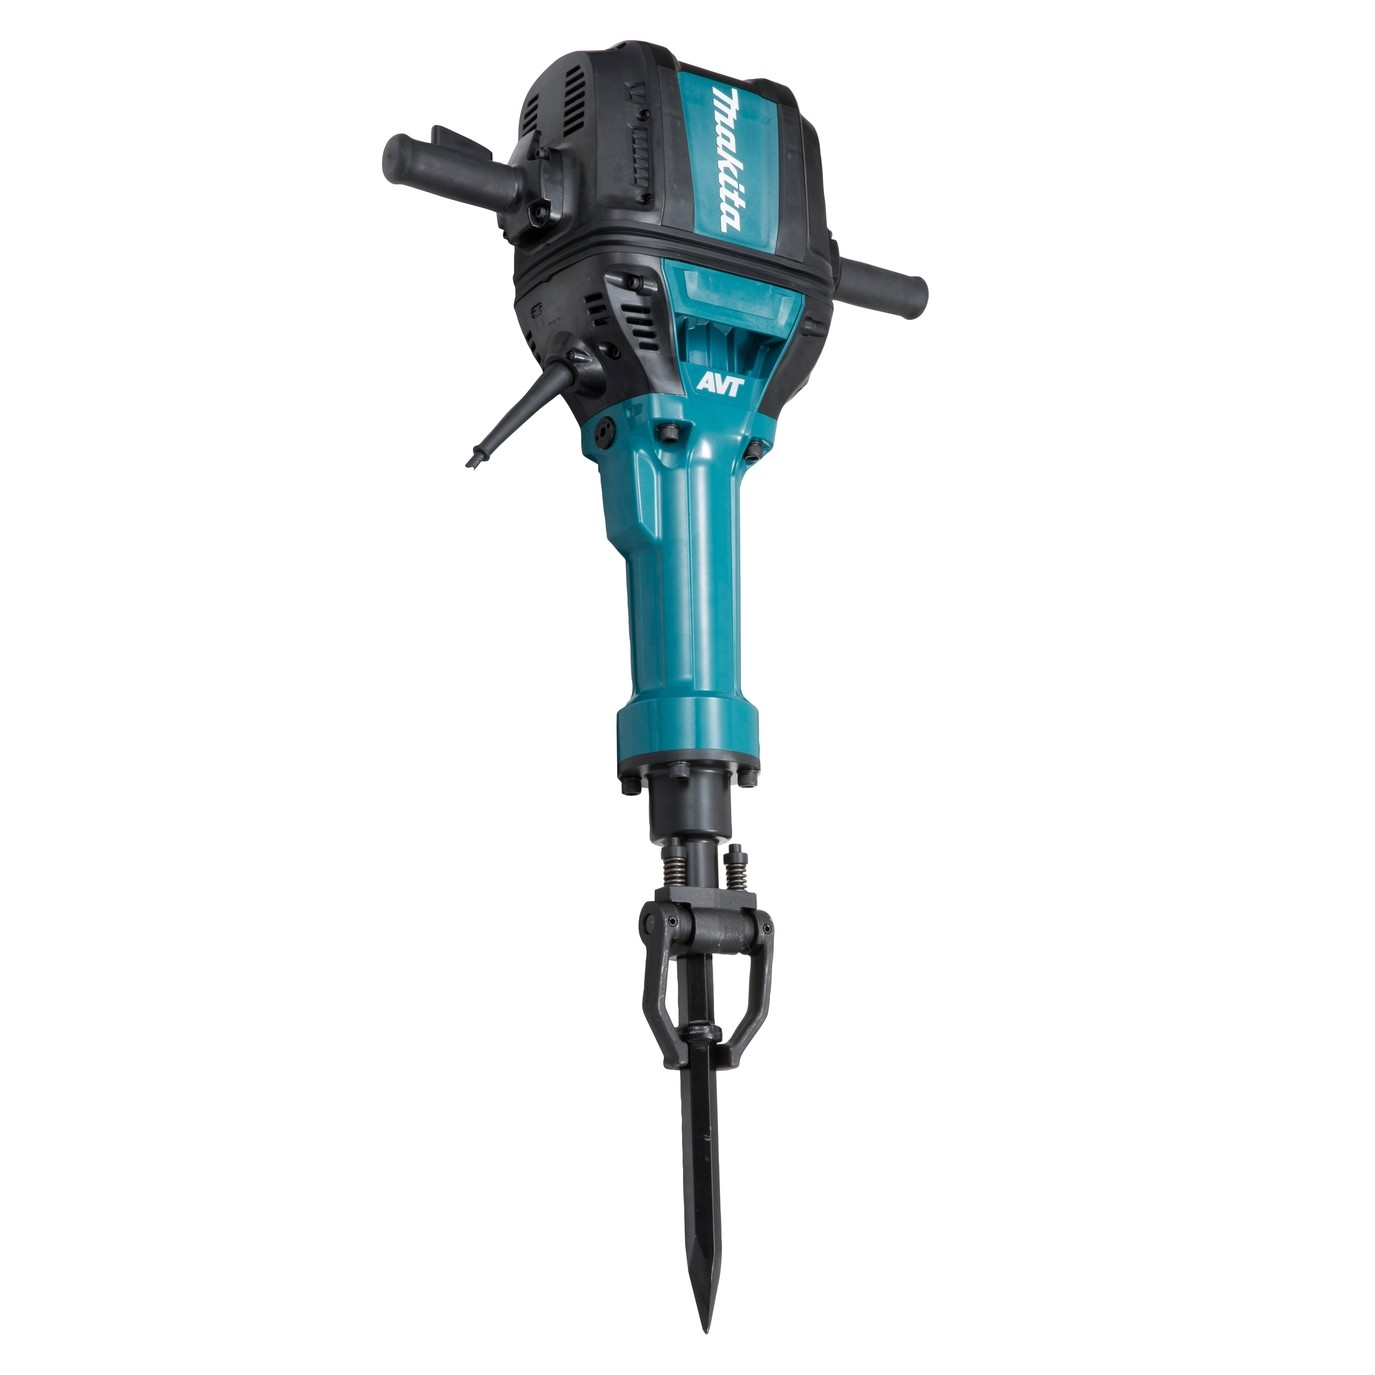 Makita HM1812 32Kg AVT Hex Shank Electric Breaker